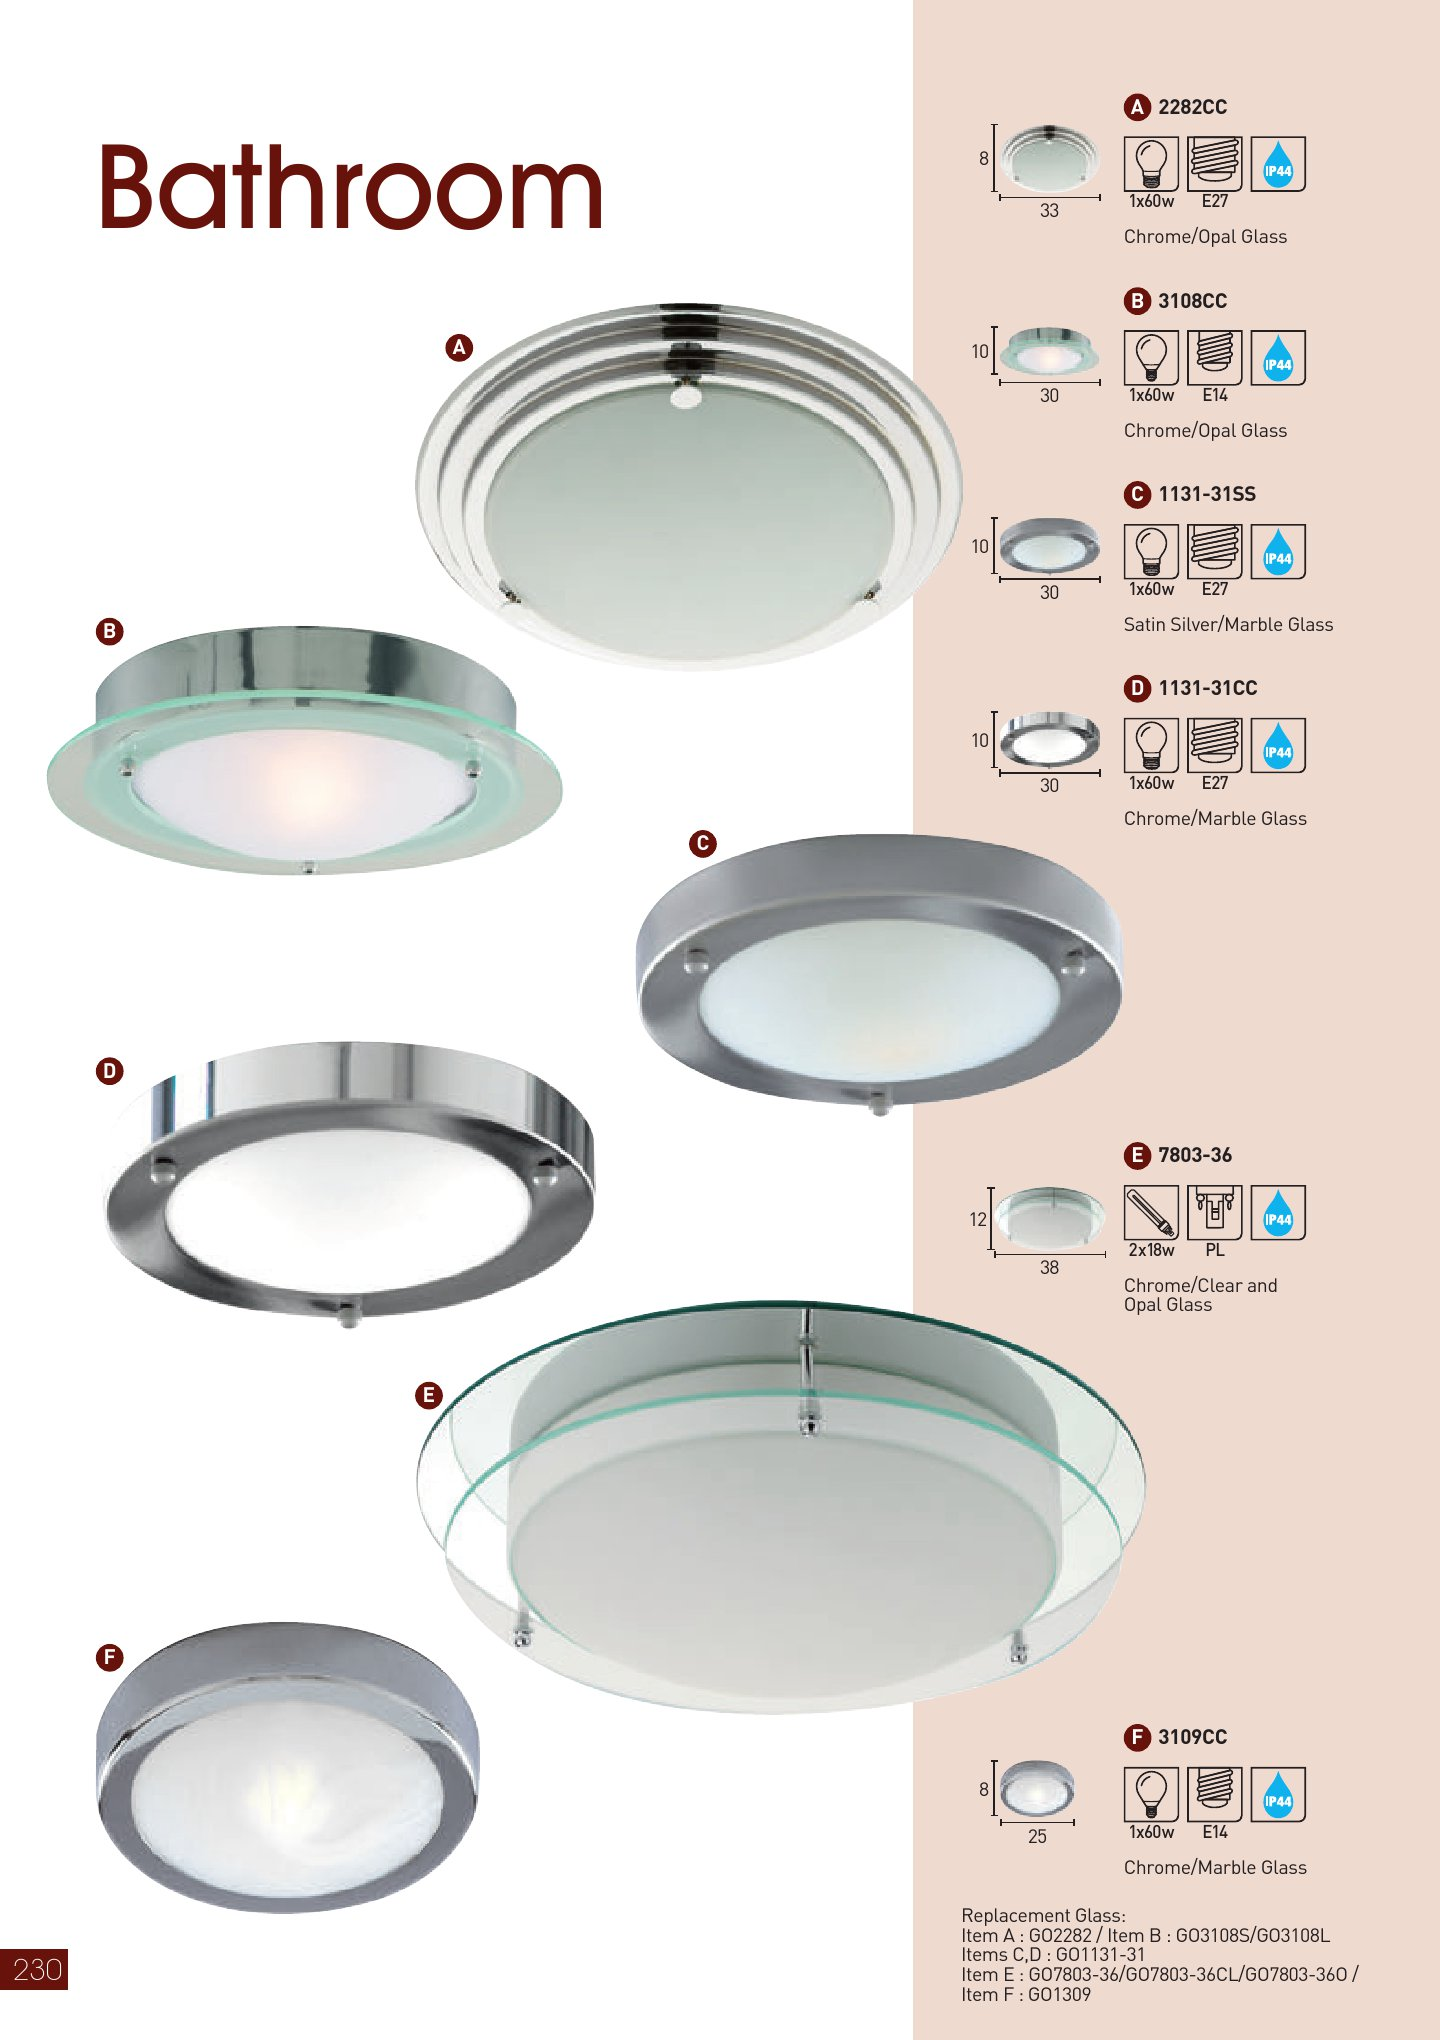 Bathroom Lights 1131 31CC Cromo